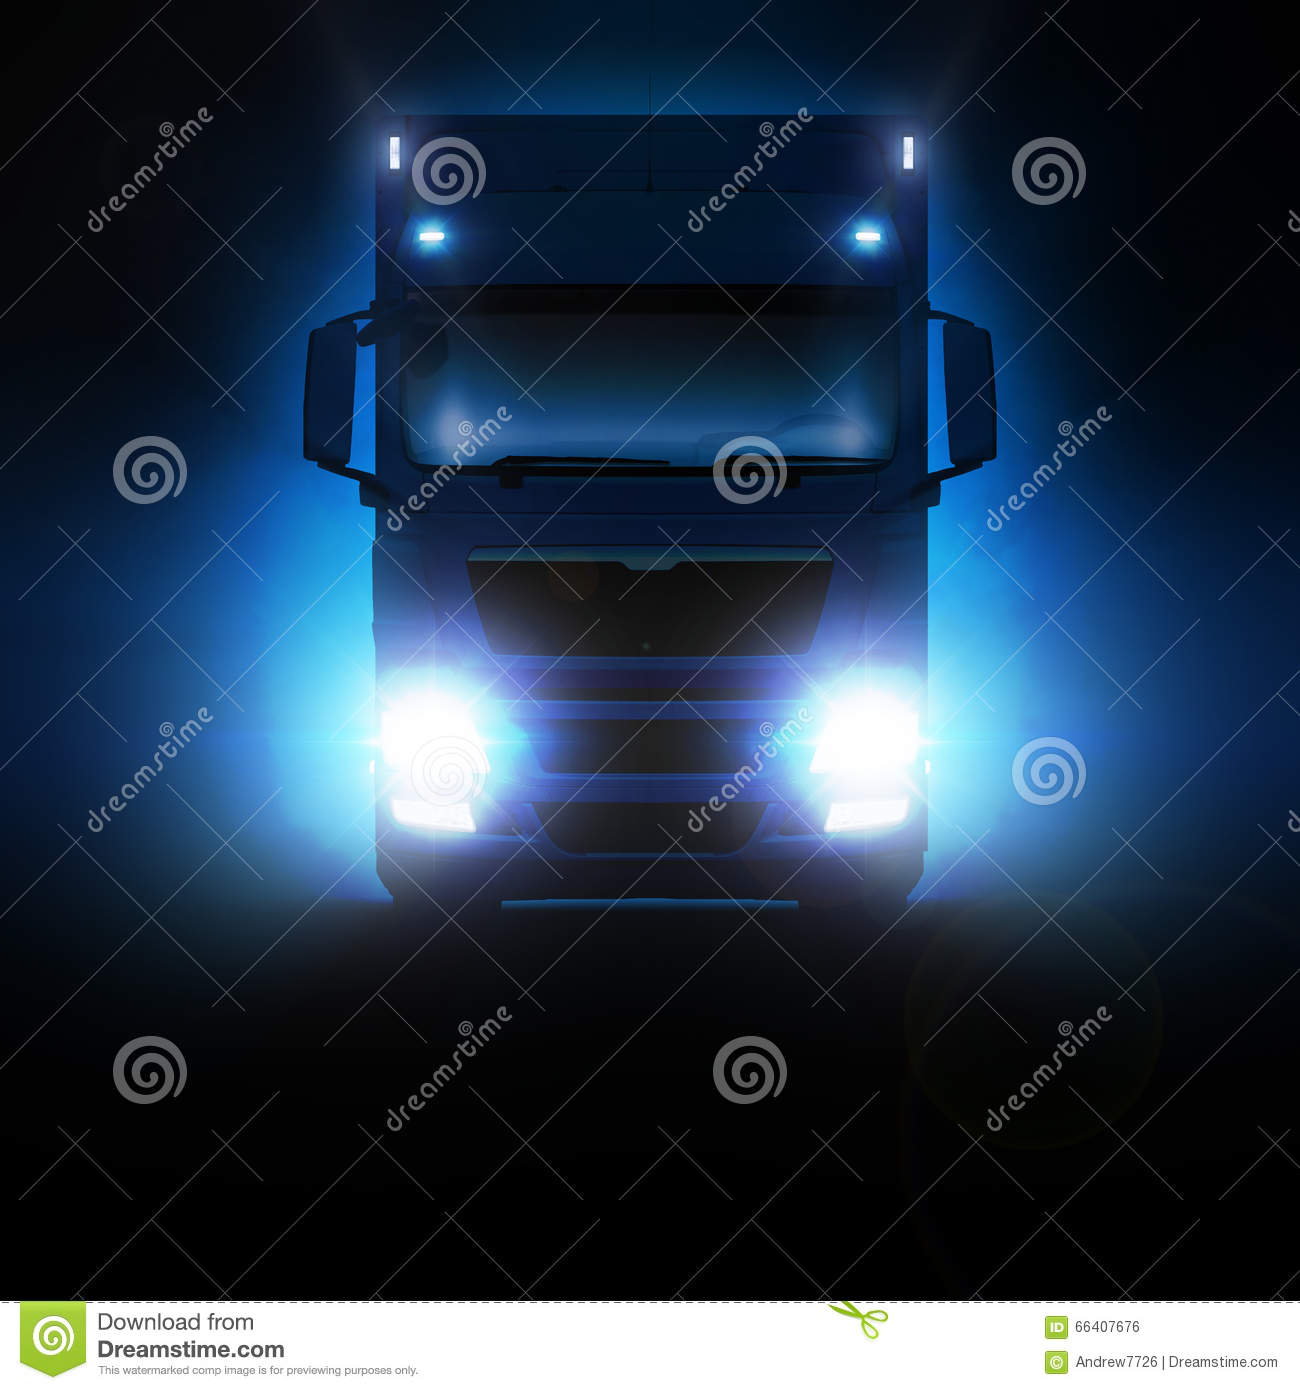 d039bf3af8 Man Truck Moving On The Highway At Night. Stock Photo - Image of ...